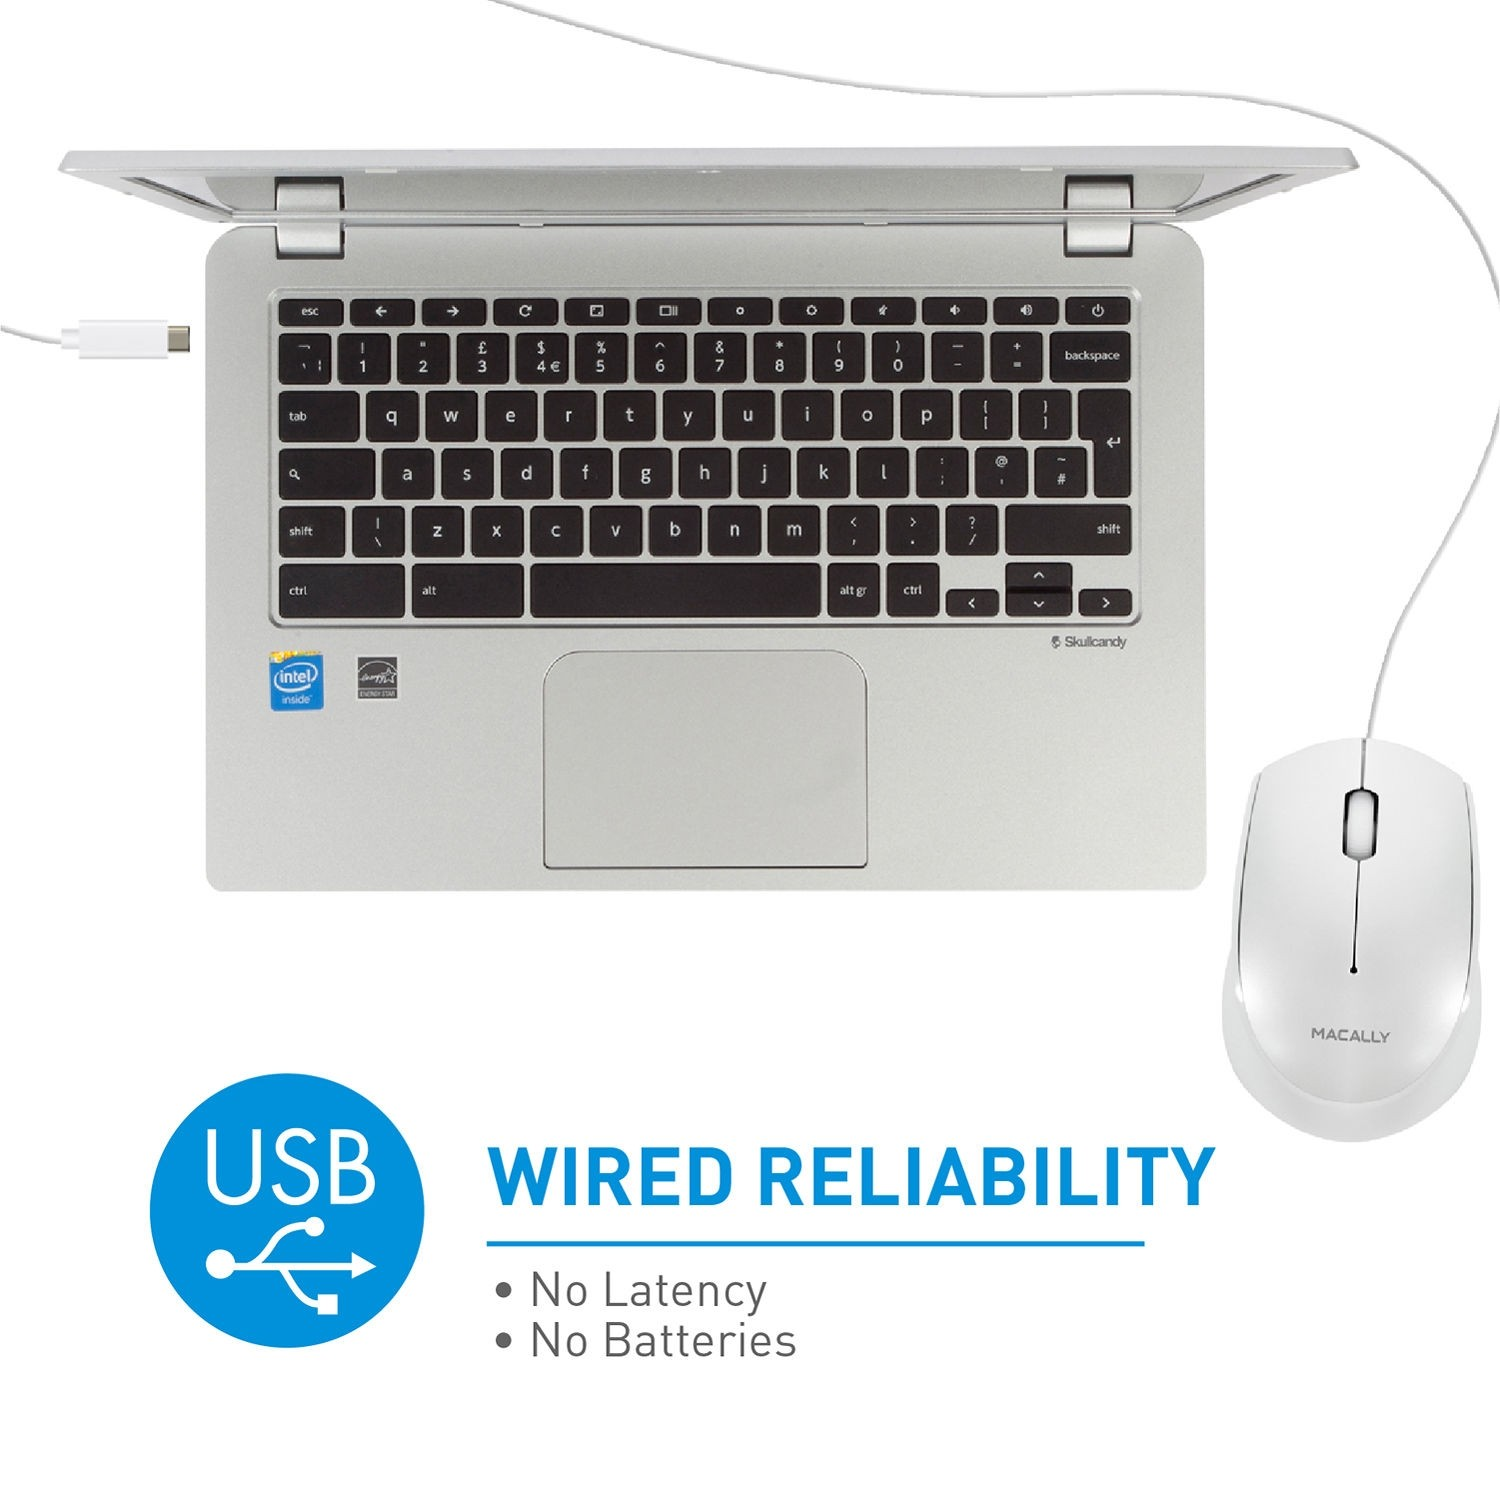 Macally 3 Button Optical USB-C Wired Mouse for Mac and PC - White, UCEZMOUSE